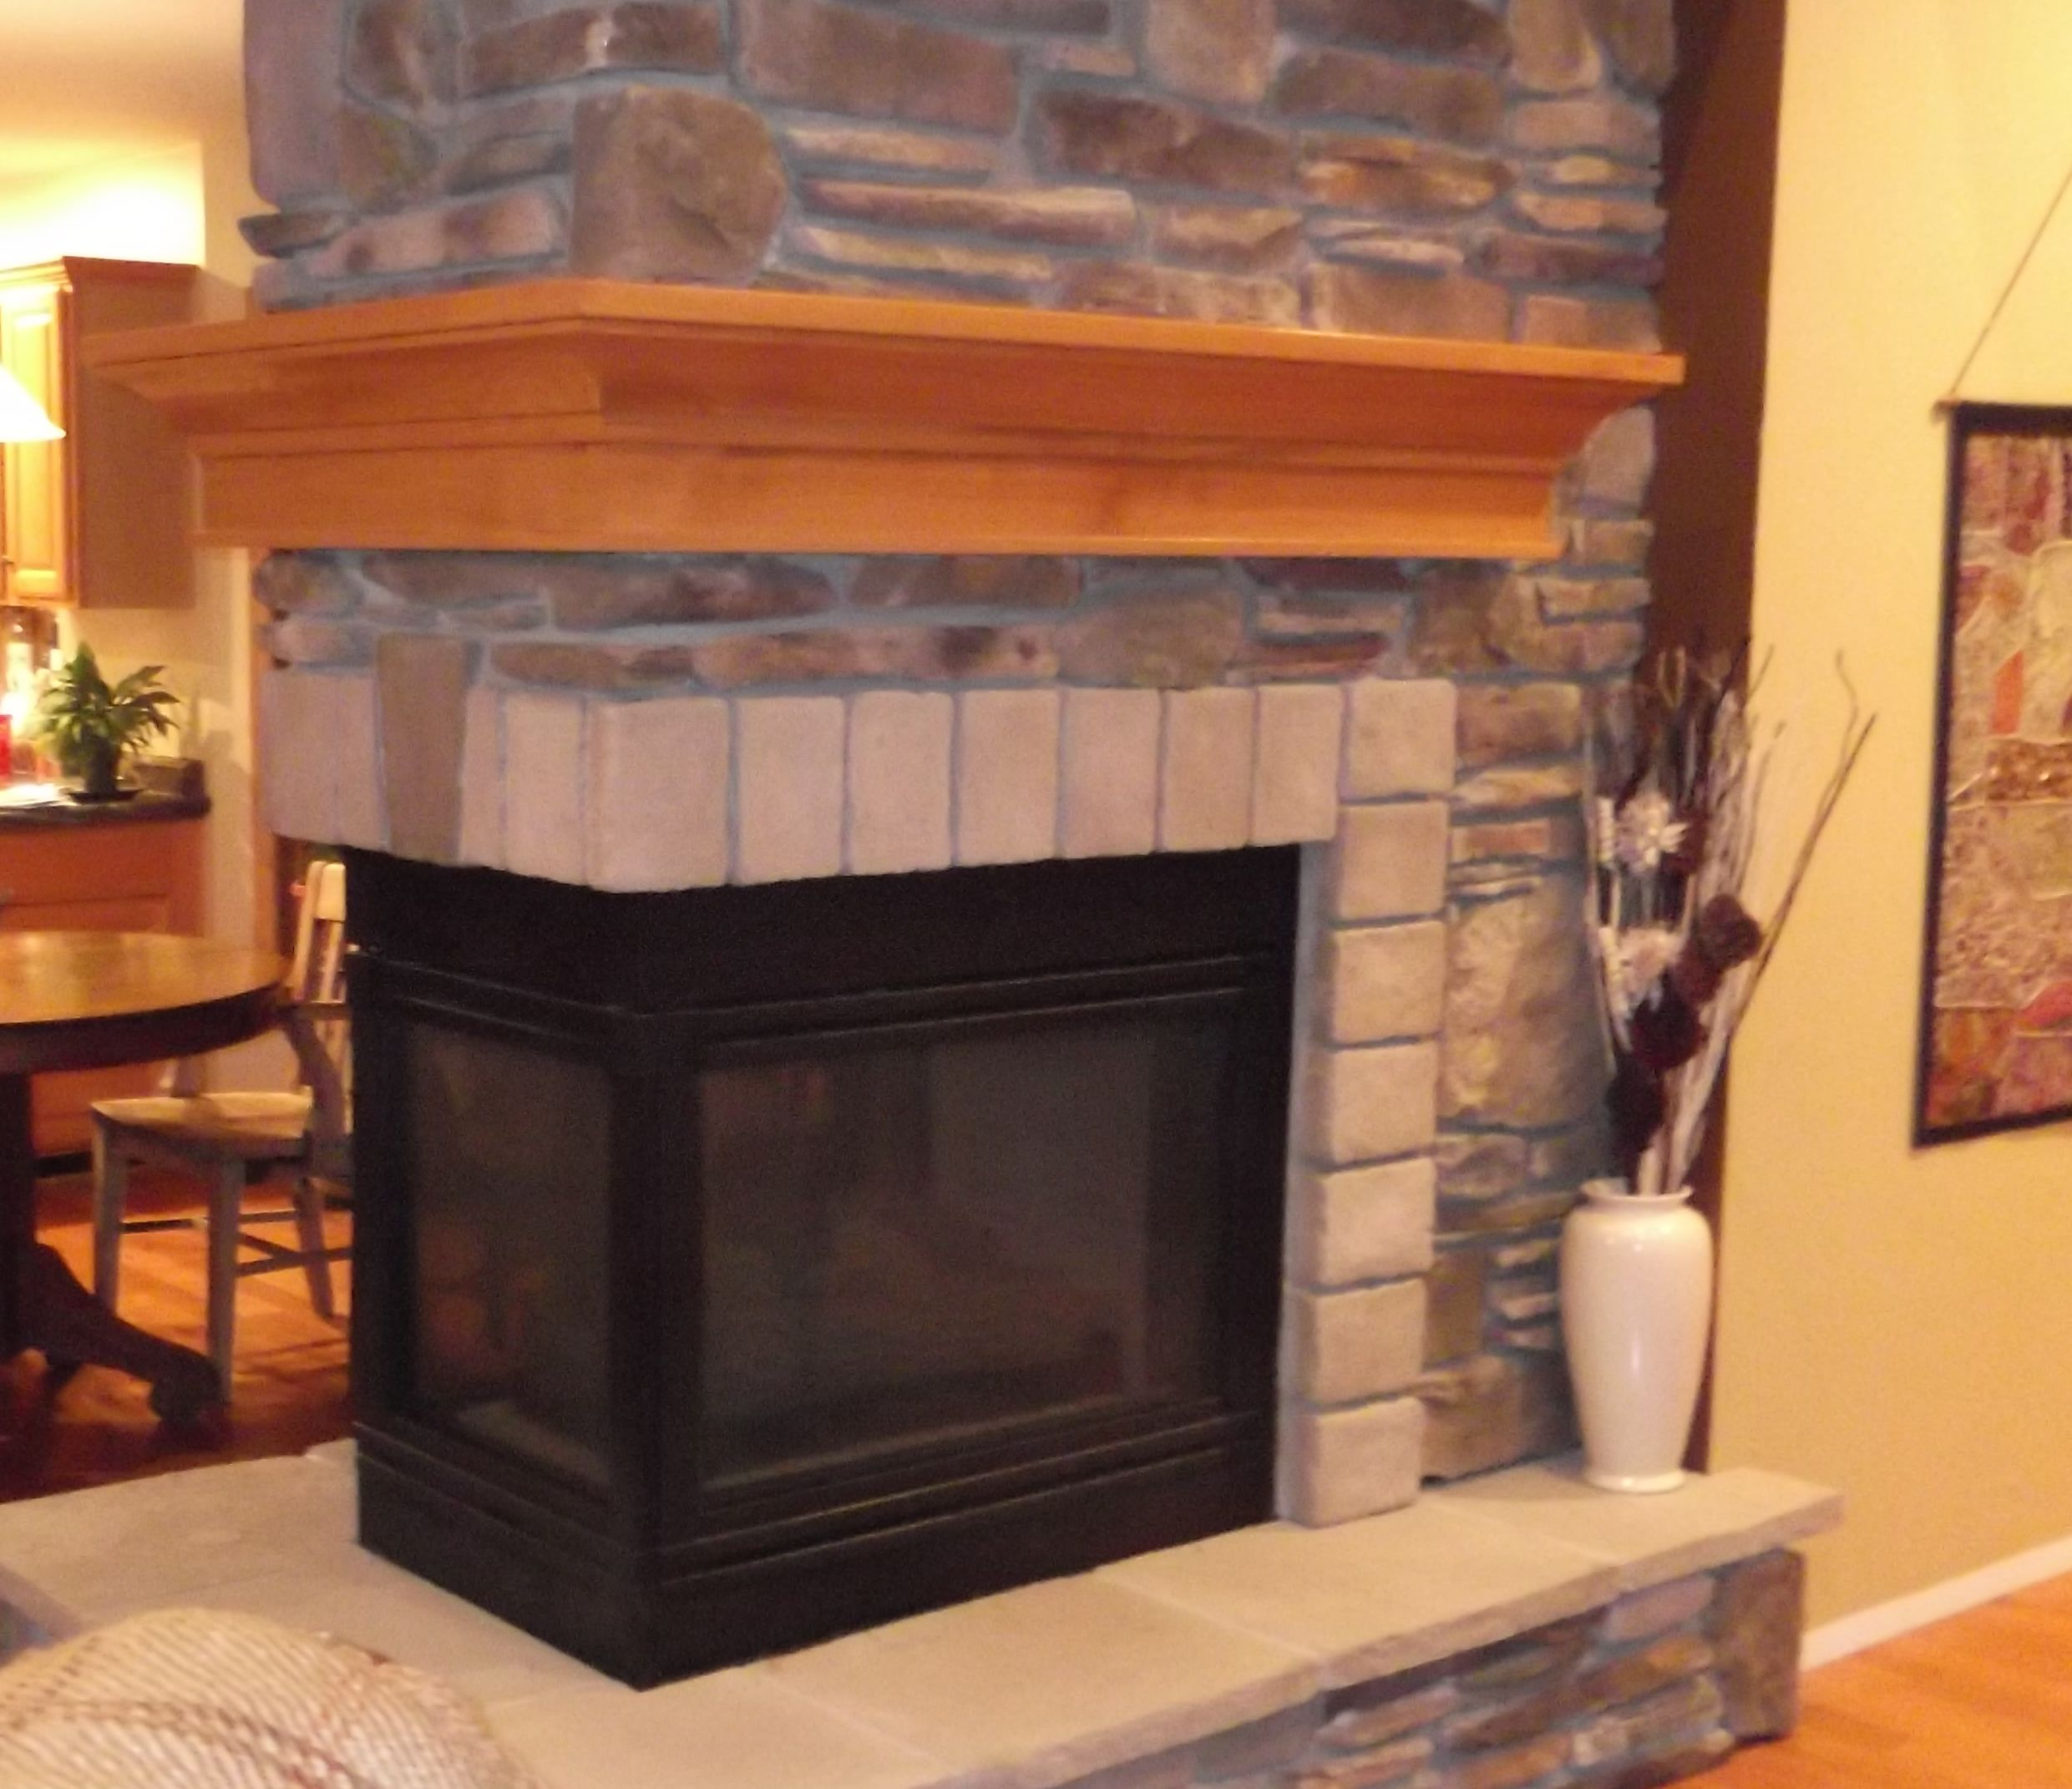 3 Sided Fireplace With Mantel Fireplace Mantels Build A Fireplace Fireplace Mantels For Sale